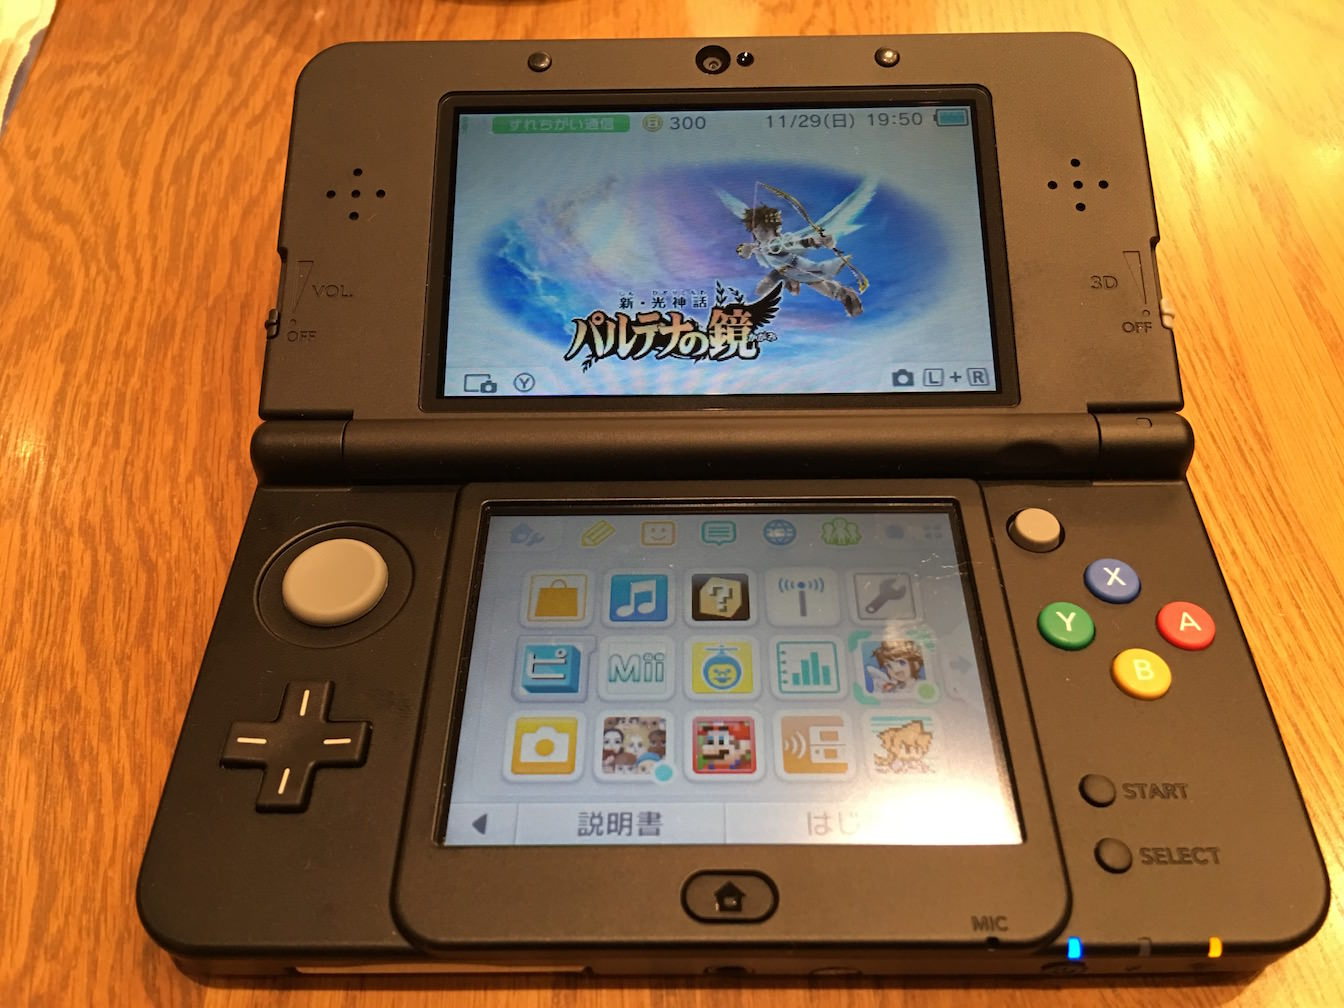 Review of zero pita filter for new nintendo 3ds 14